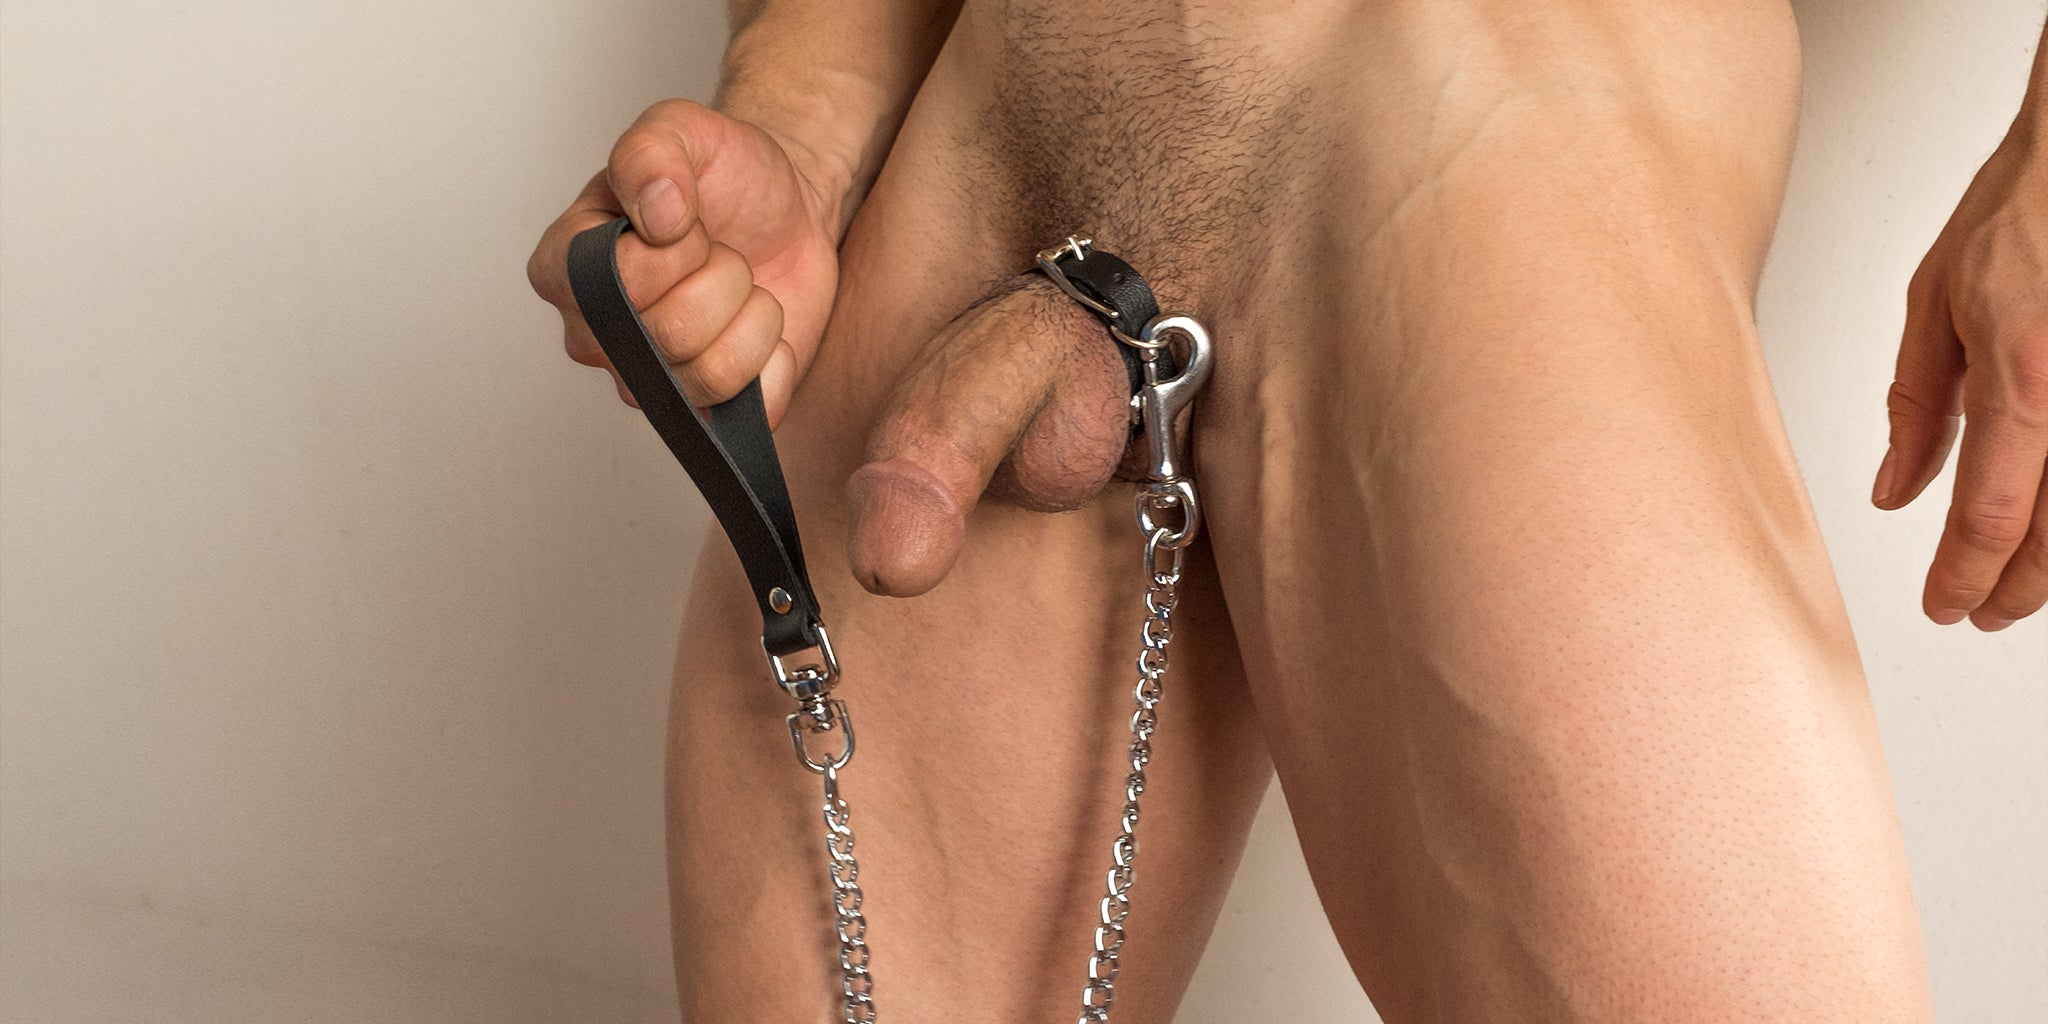 Male Stockroom: Men's Sex Toys, Cock Rings, Butt Plugs, Anal Toys, Ball Stretchers, Prostate Massagers, and more.